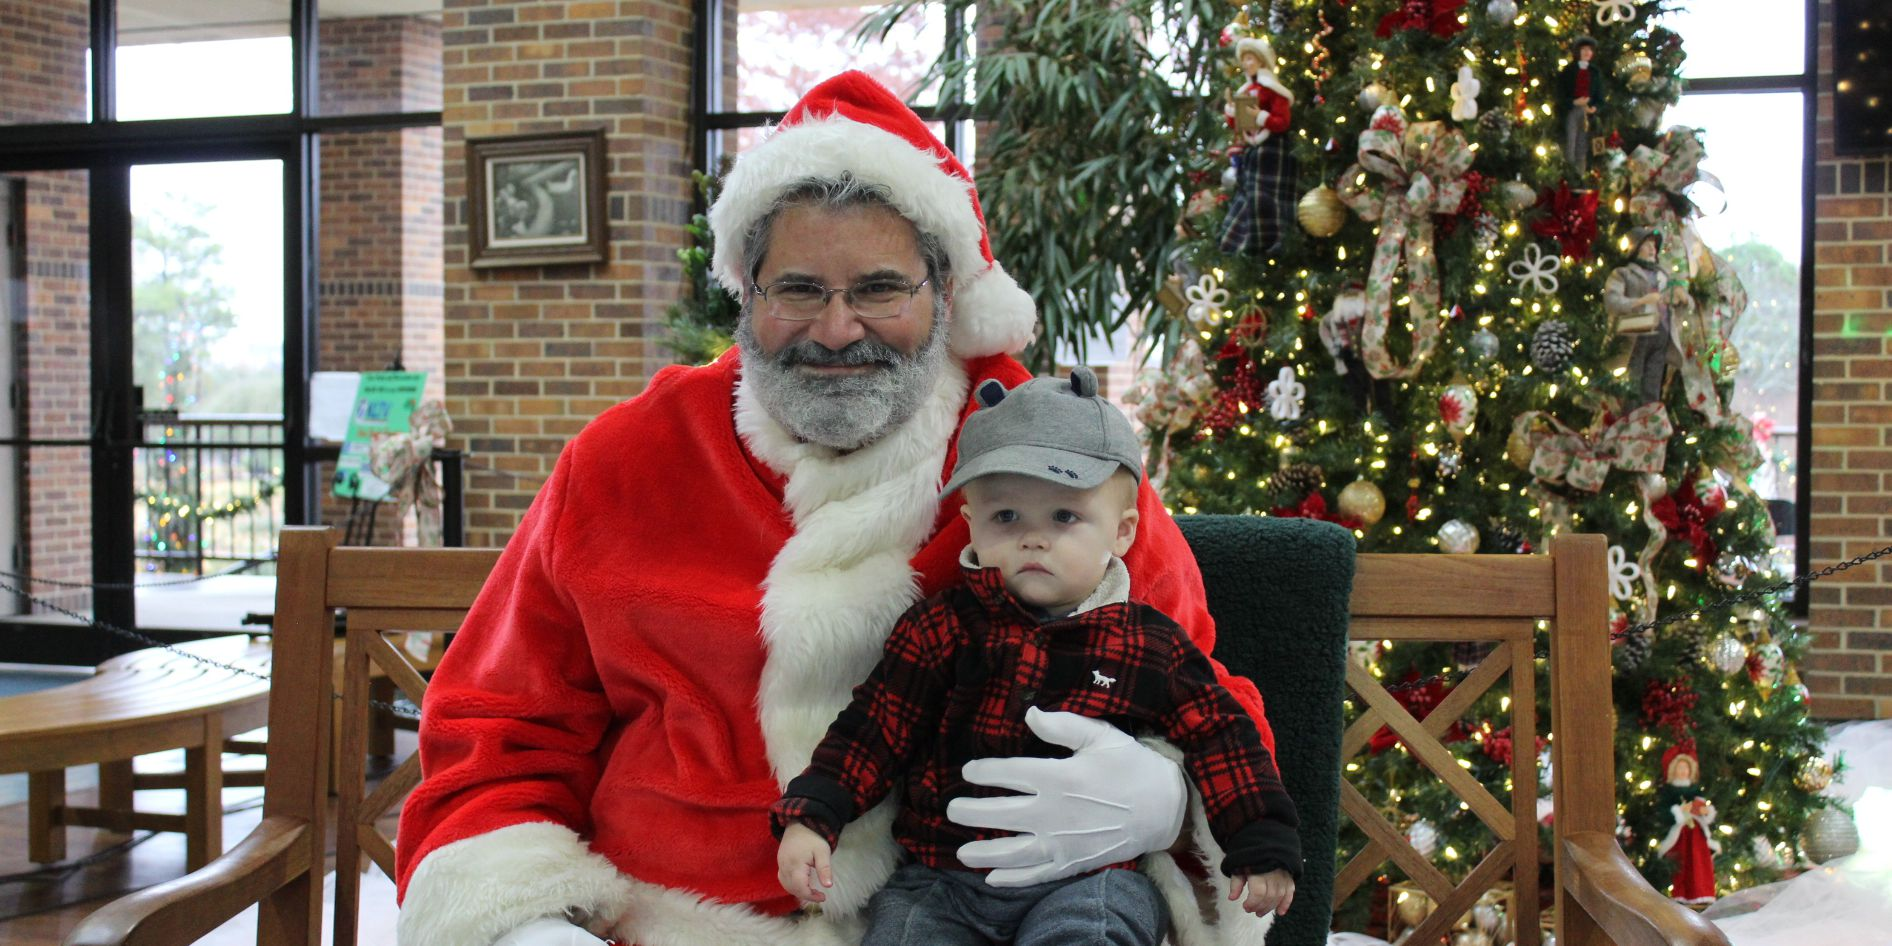 SLIDESHOW: Get your child's 'Holiday in the Garden' photos